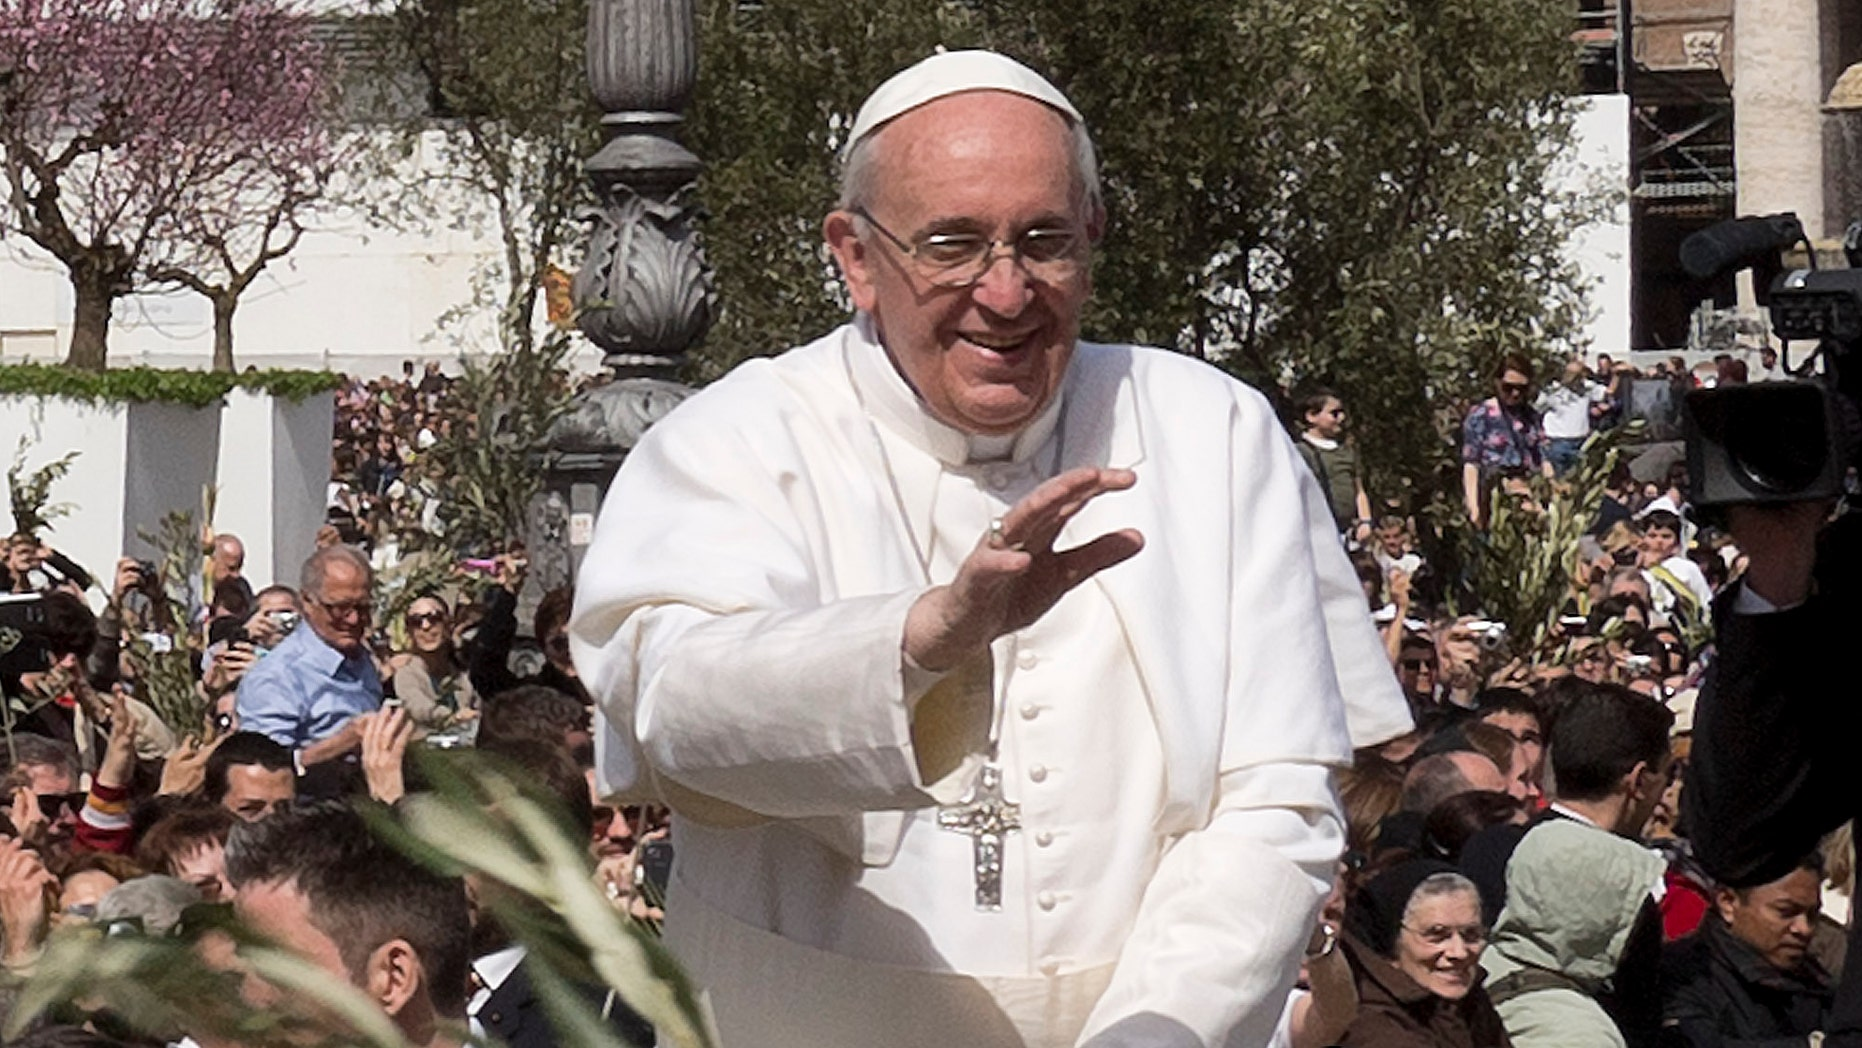 March 24, 2013: Pope Francis waves at a cheering crowd as he wades through St. Peter's Square at the Vatican.